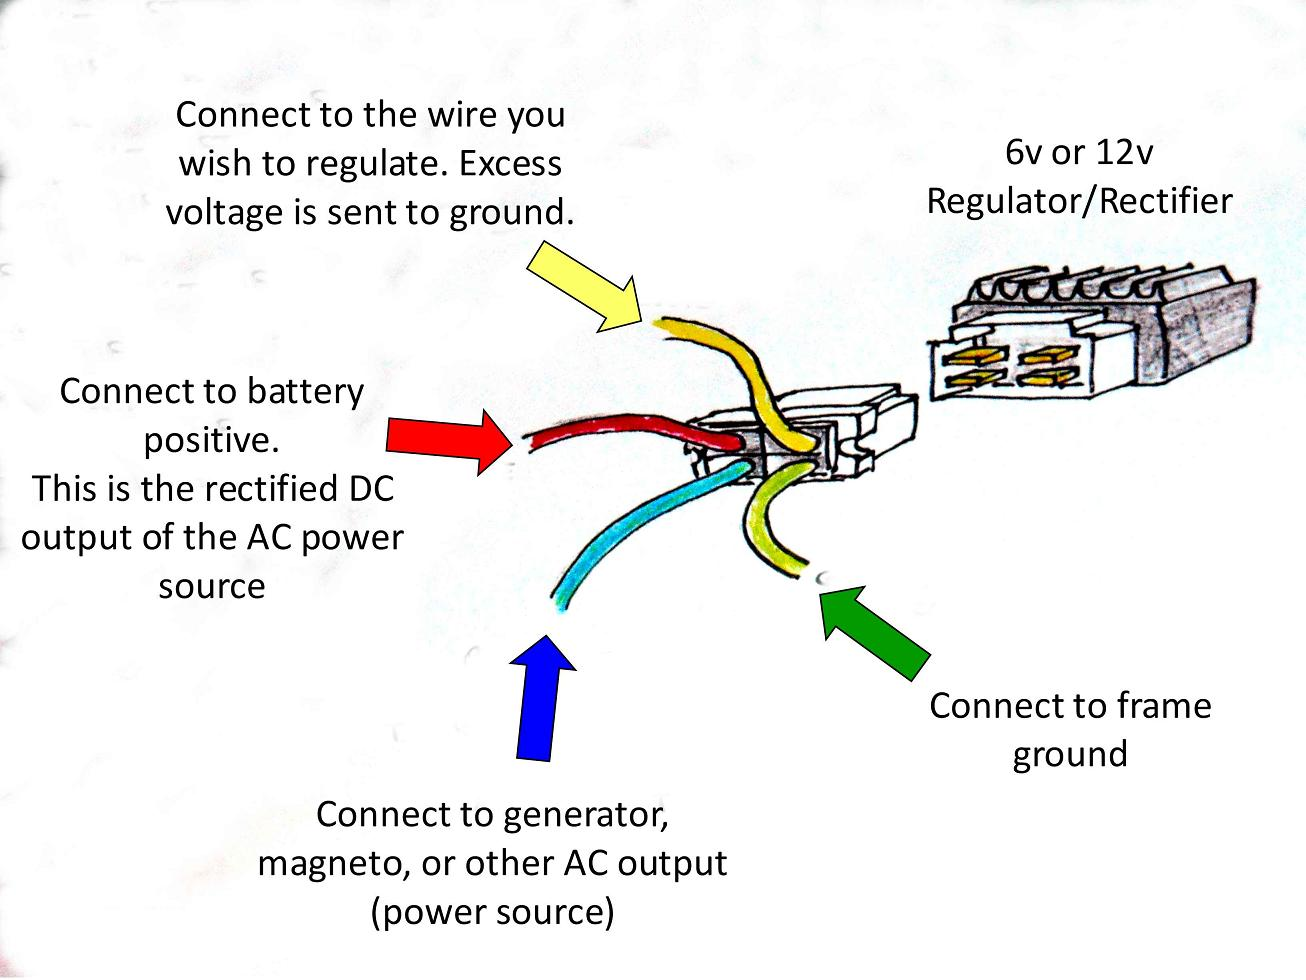 6 volt voltage regulator wiring 6 image wiring diagram 12v or 6v ct70 regulator rectifier pigtail click for instructions on 6 volt voltage regulator wiring